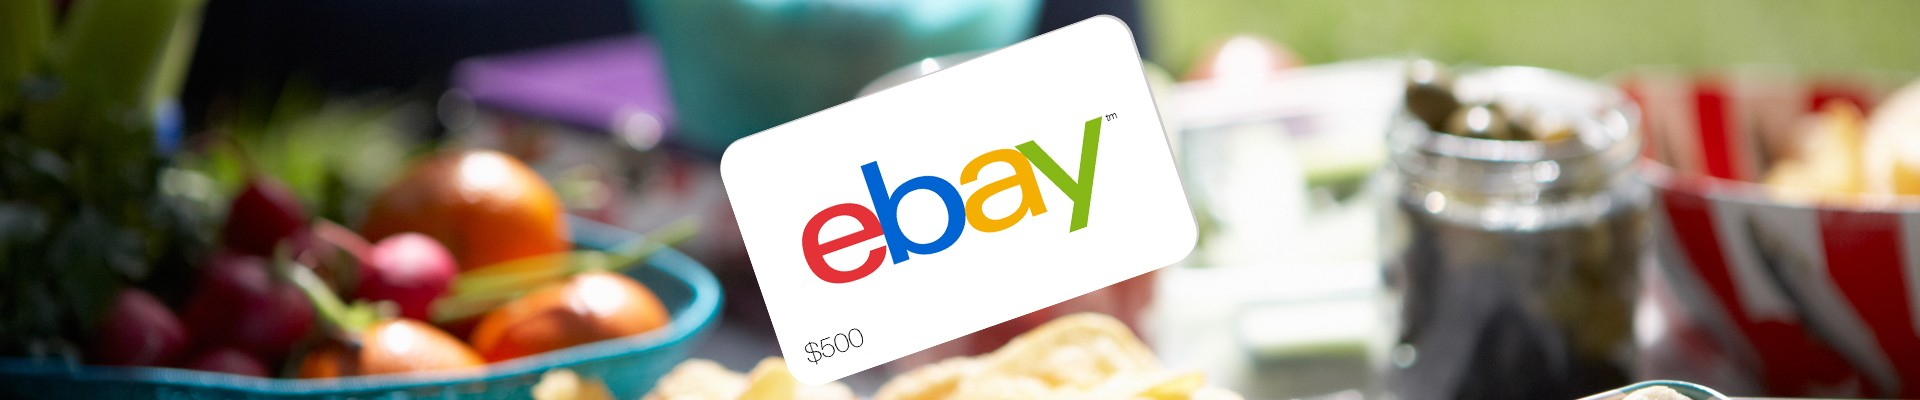 RV Ebay America Beautiful Sale Event giftcard picnic